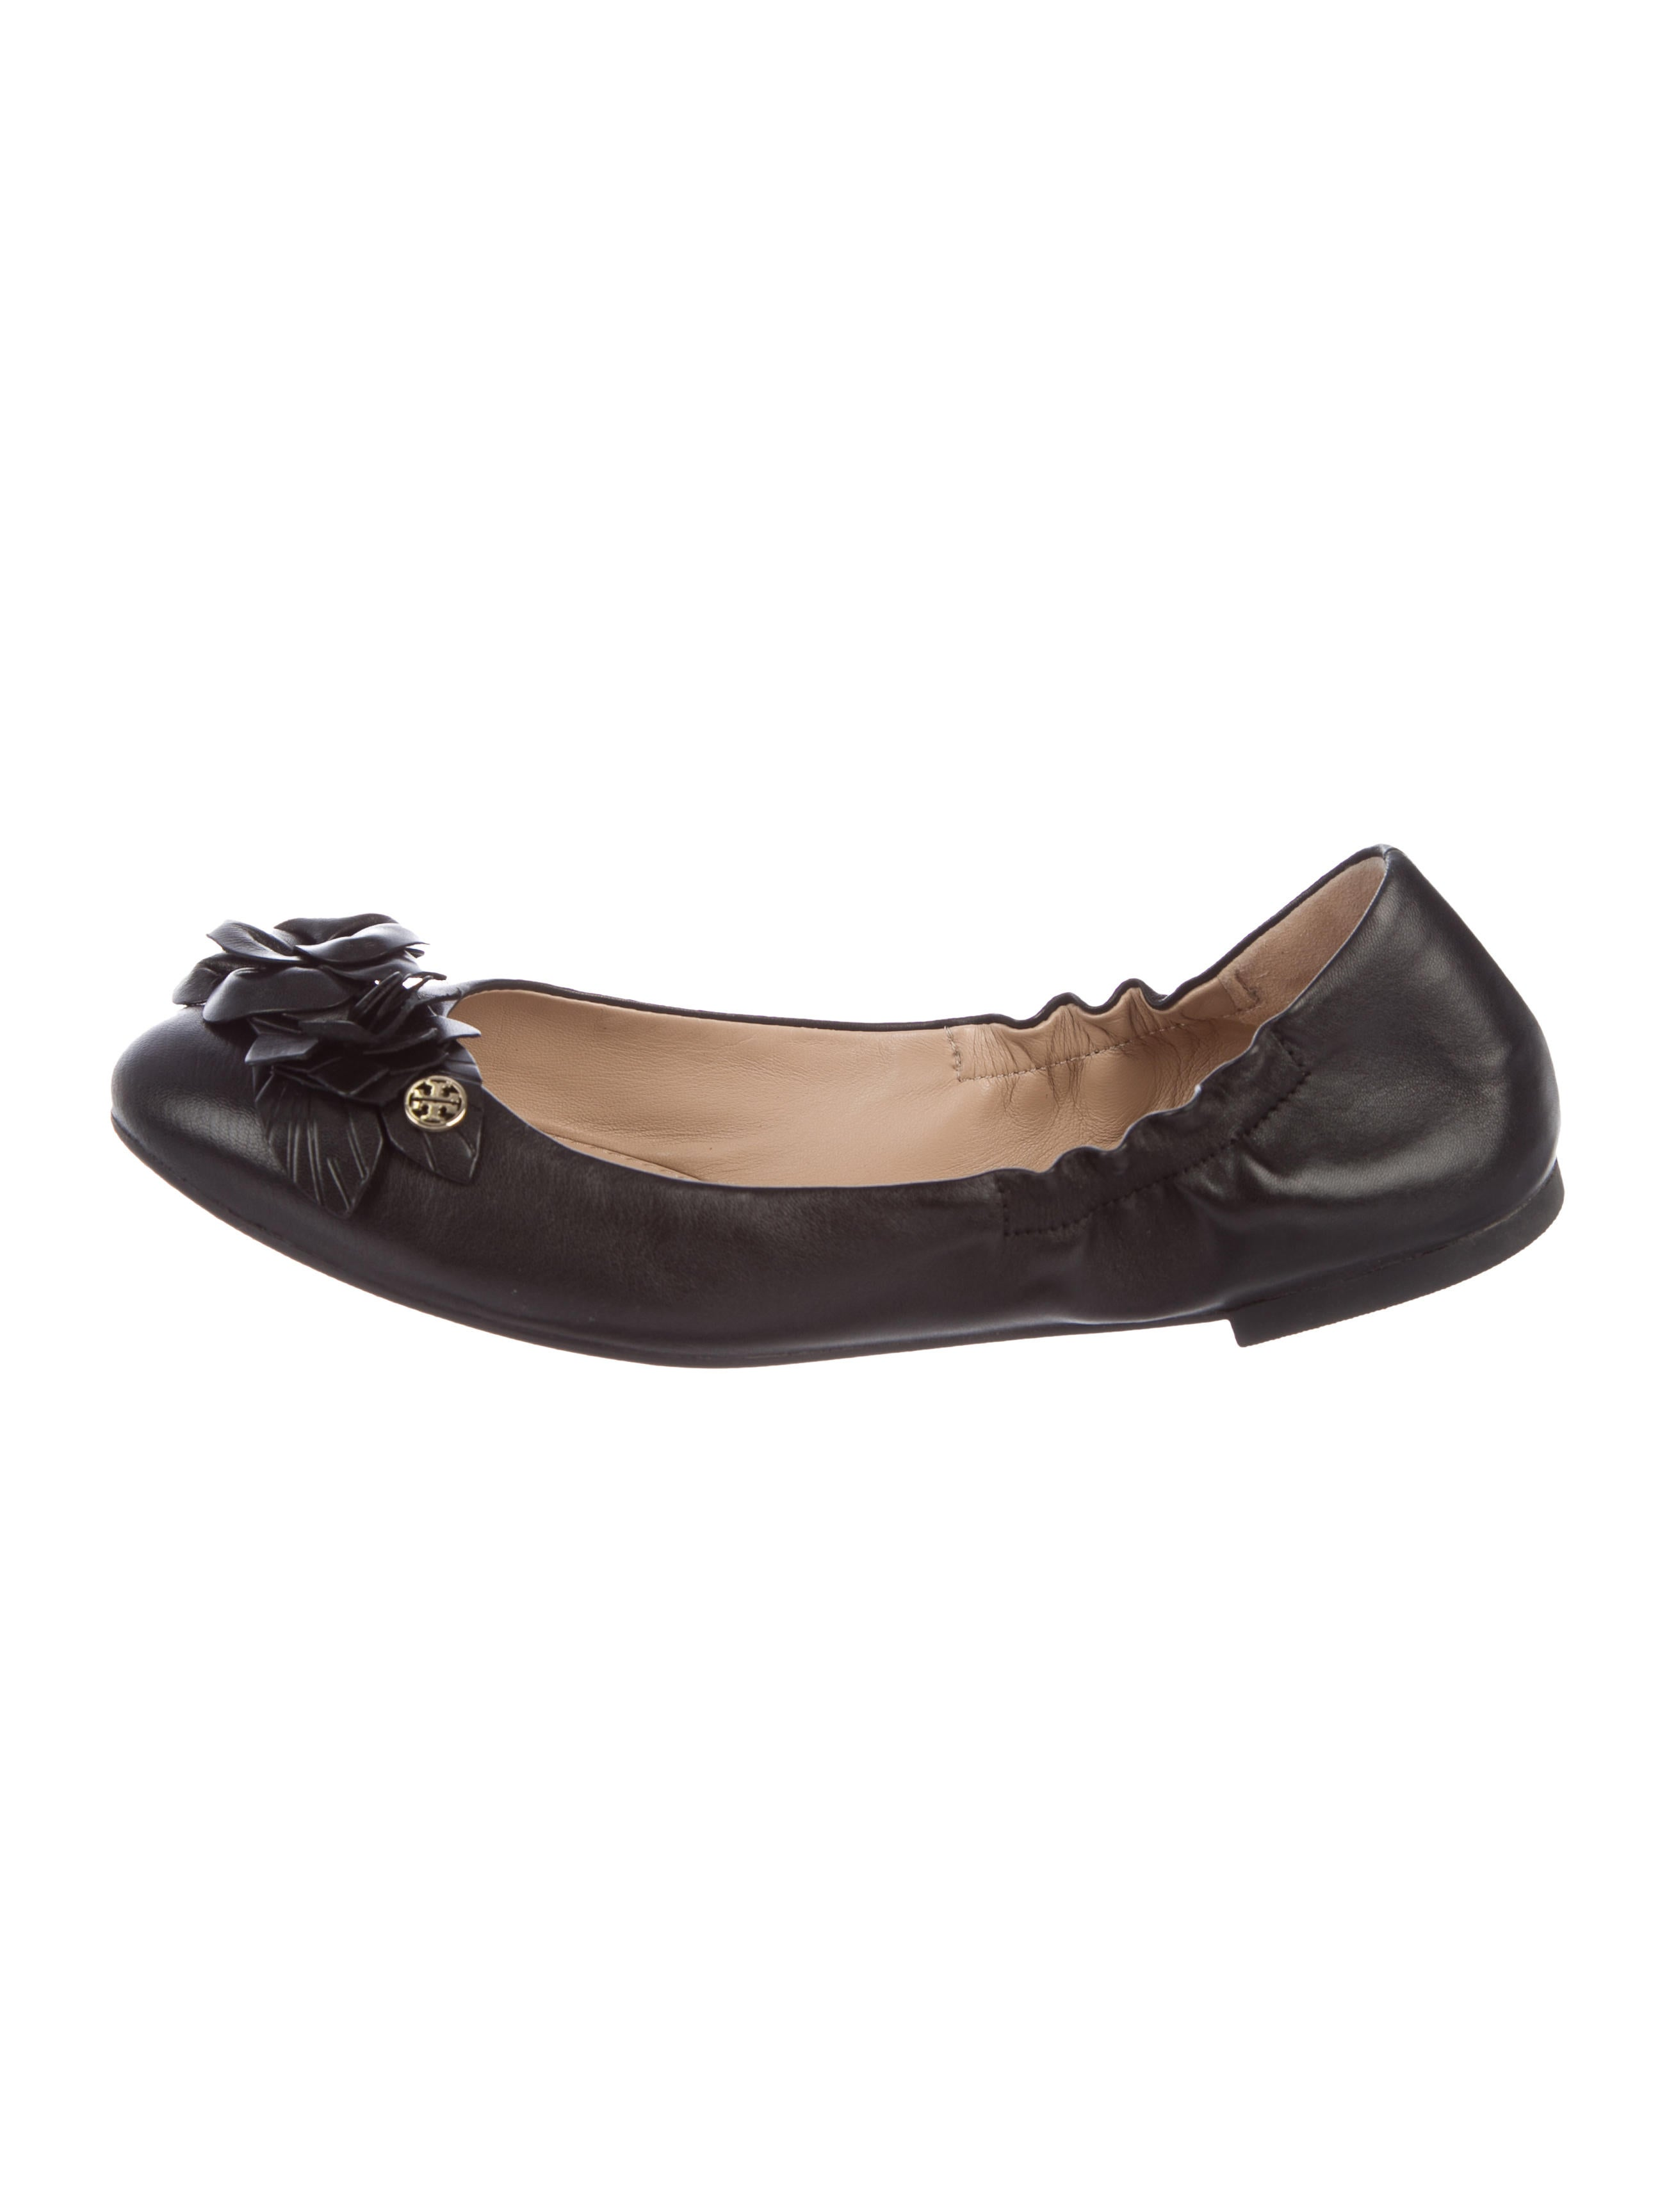 Tory Burch 2016 Blossom Ballet Flats best cheap online wide range of for sale brand new unisex online sale amazon discount low shipping JOQ6AlcY